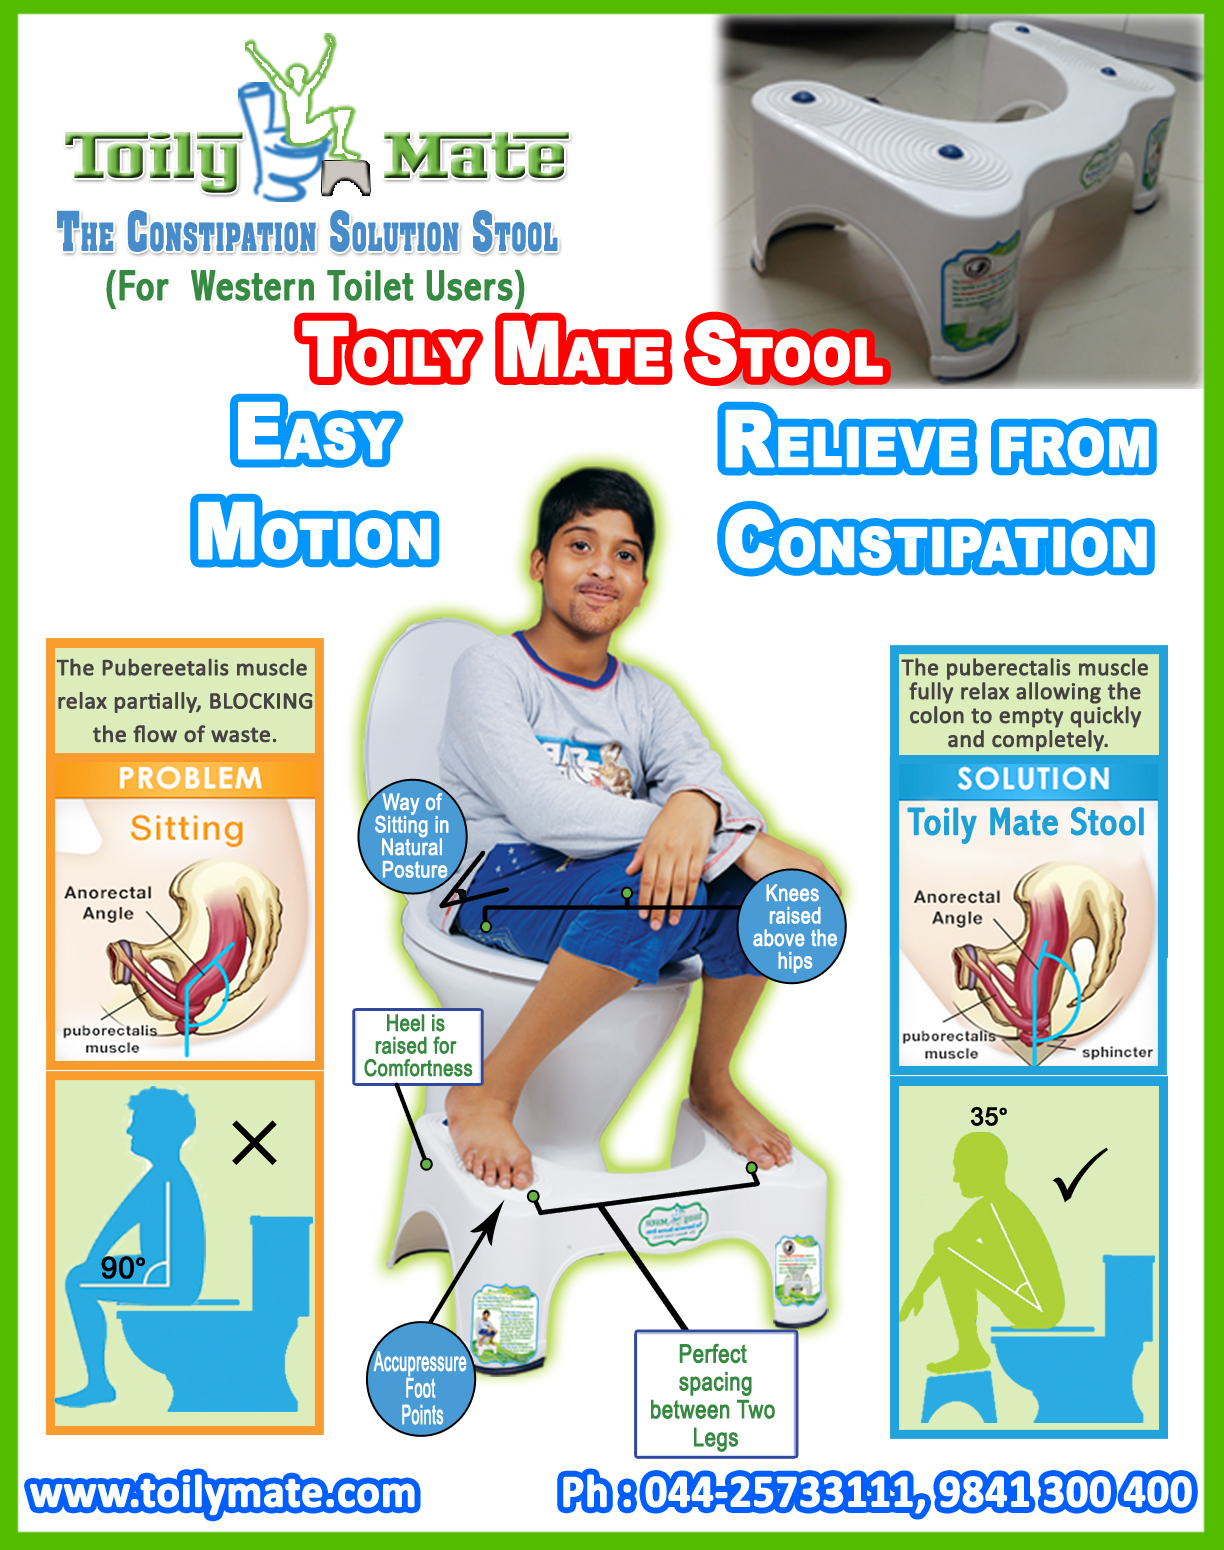 Squatty Potty Stool for Western Toilets